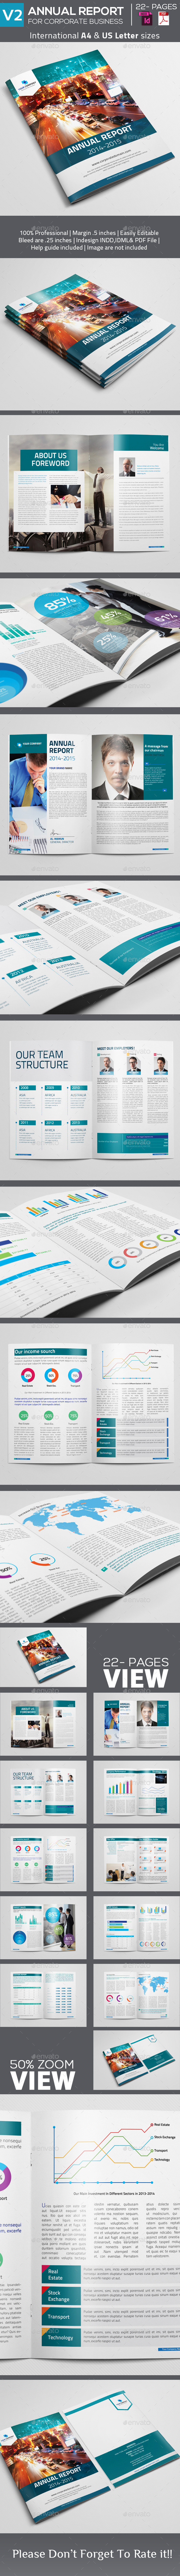 GraphicRiver Annual Report 22 pages V2 9425439